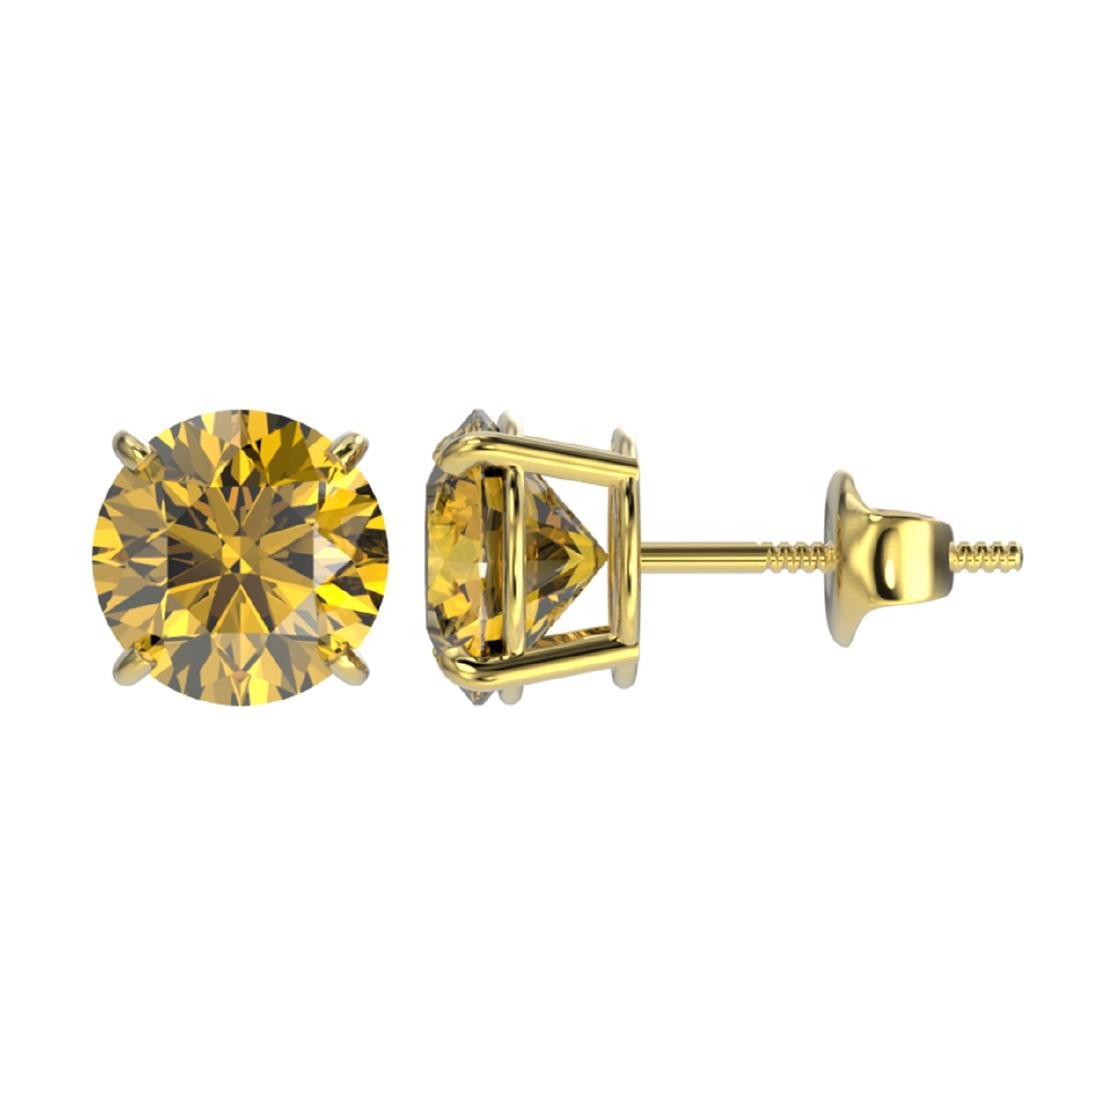 2 ctw Intense Yellow Diamond Stud Earrings 10K Yellow - 2